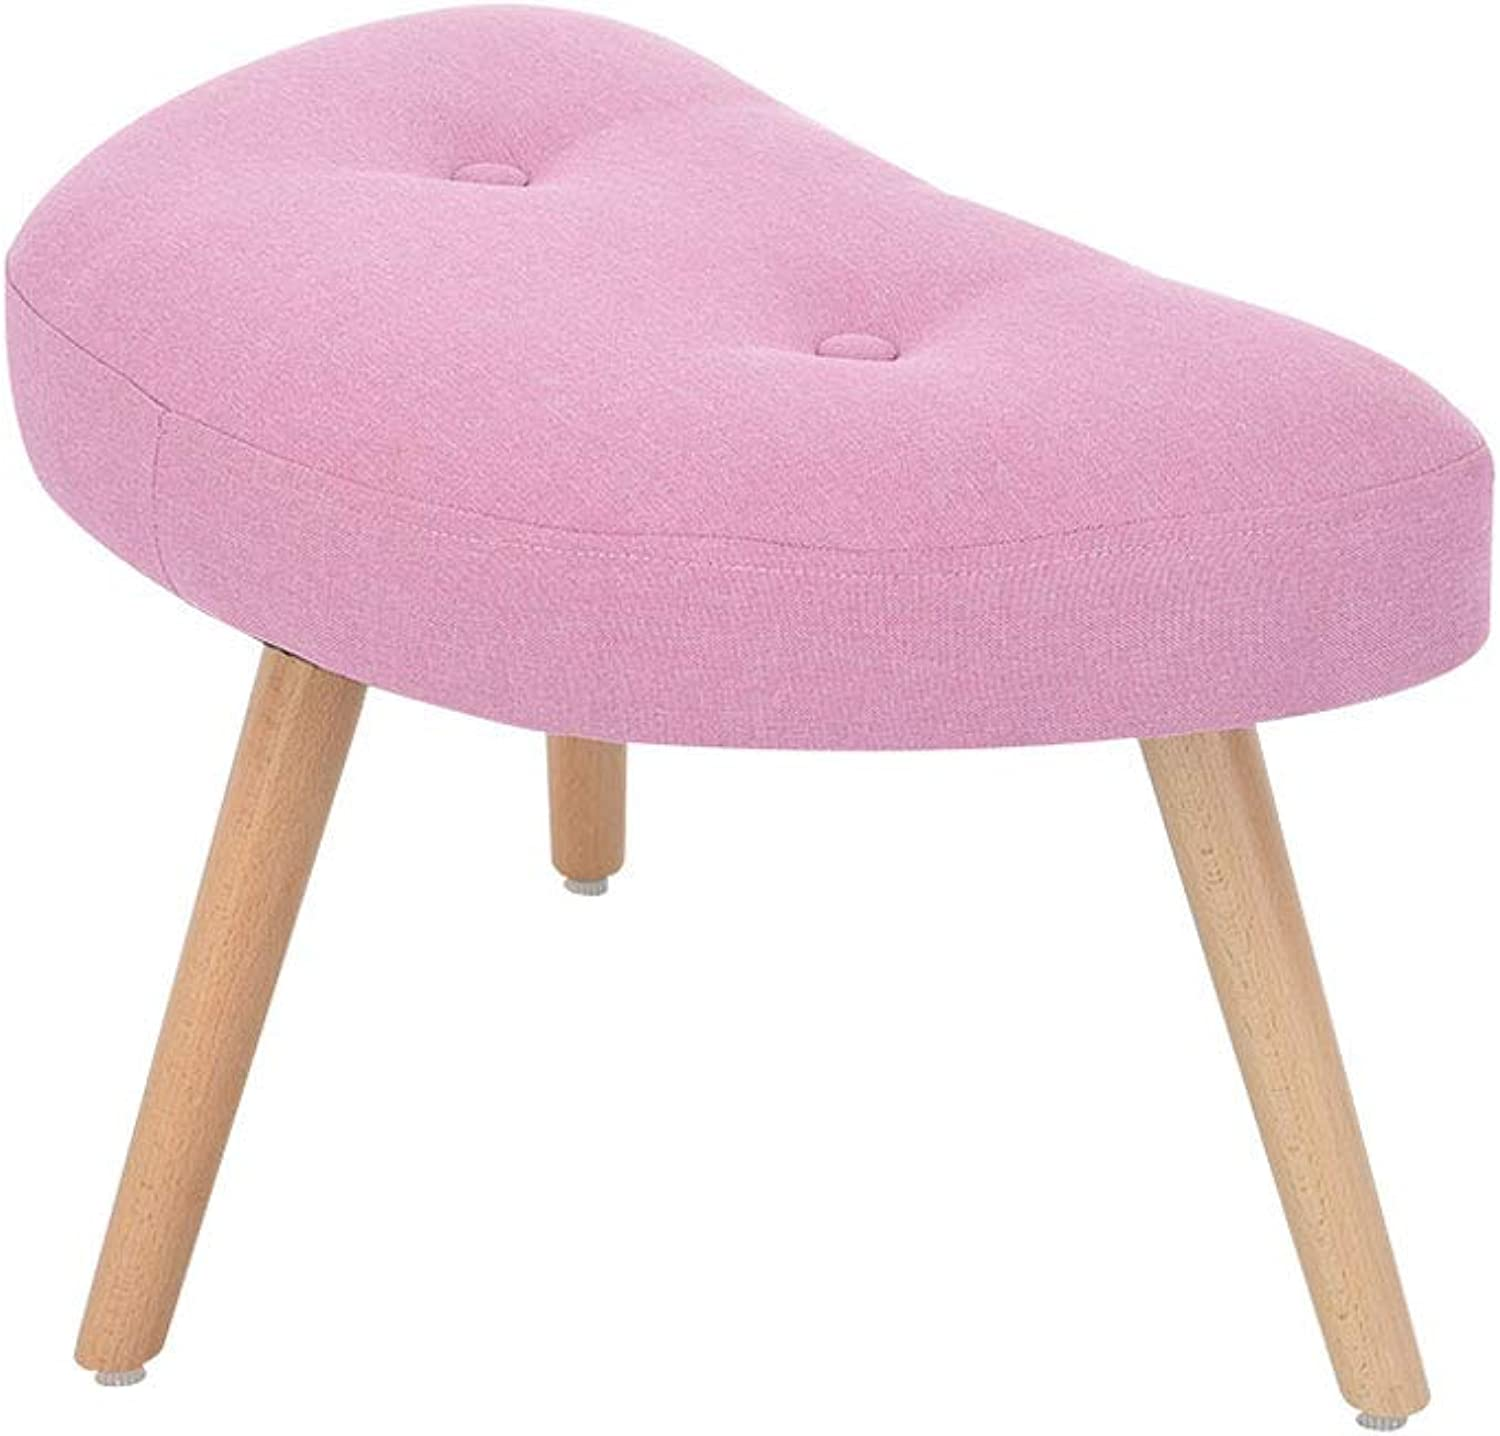 Footstool, Home Fabric shoes Bench Dressing Stool Multi-Function Living Room Sofa Footstool (color   Pink)